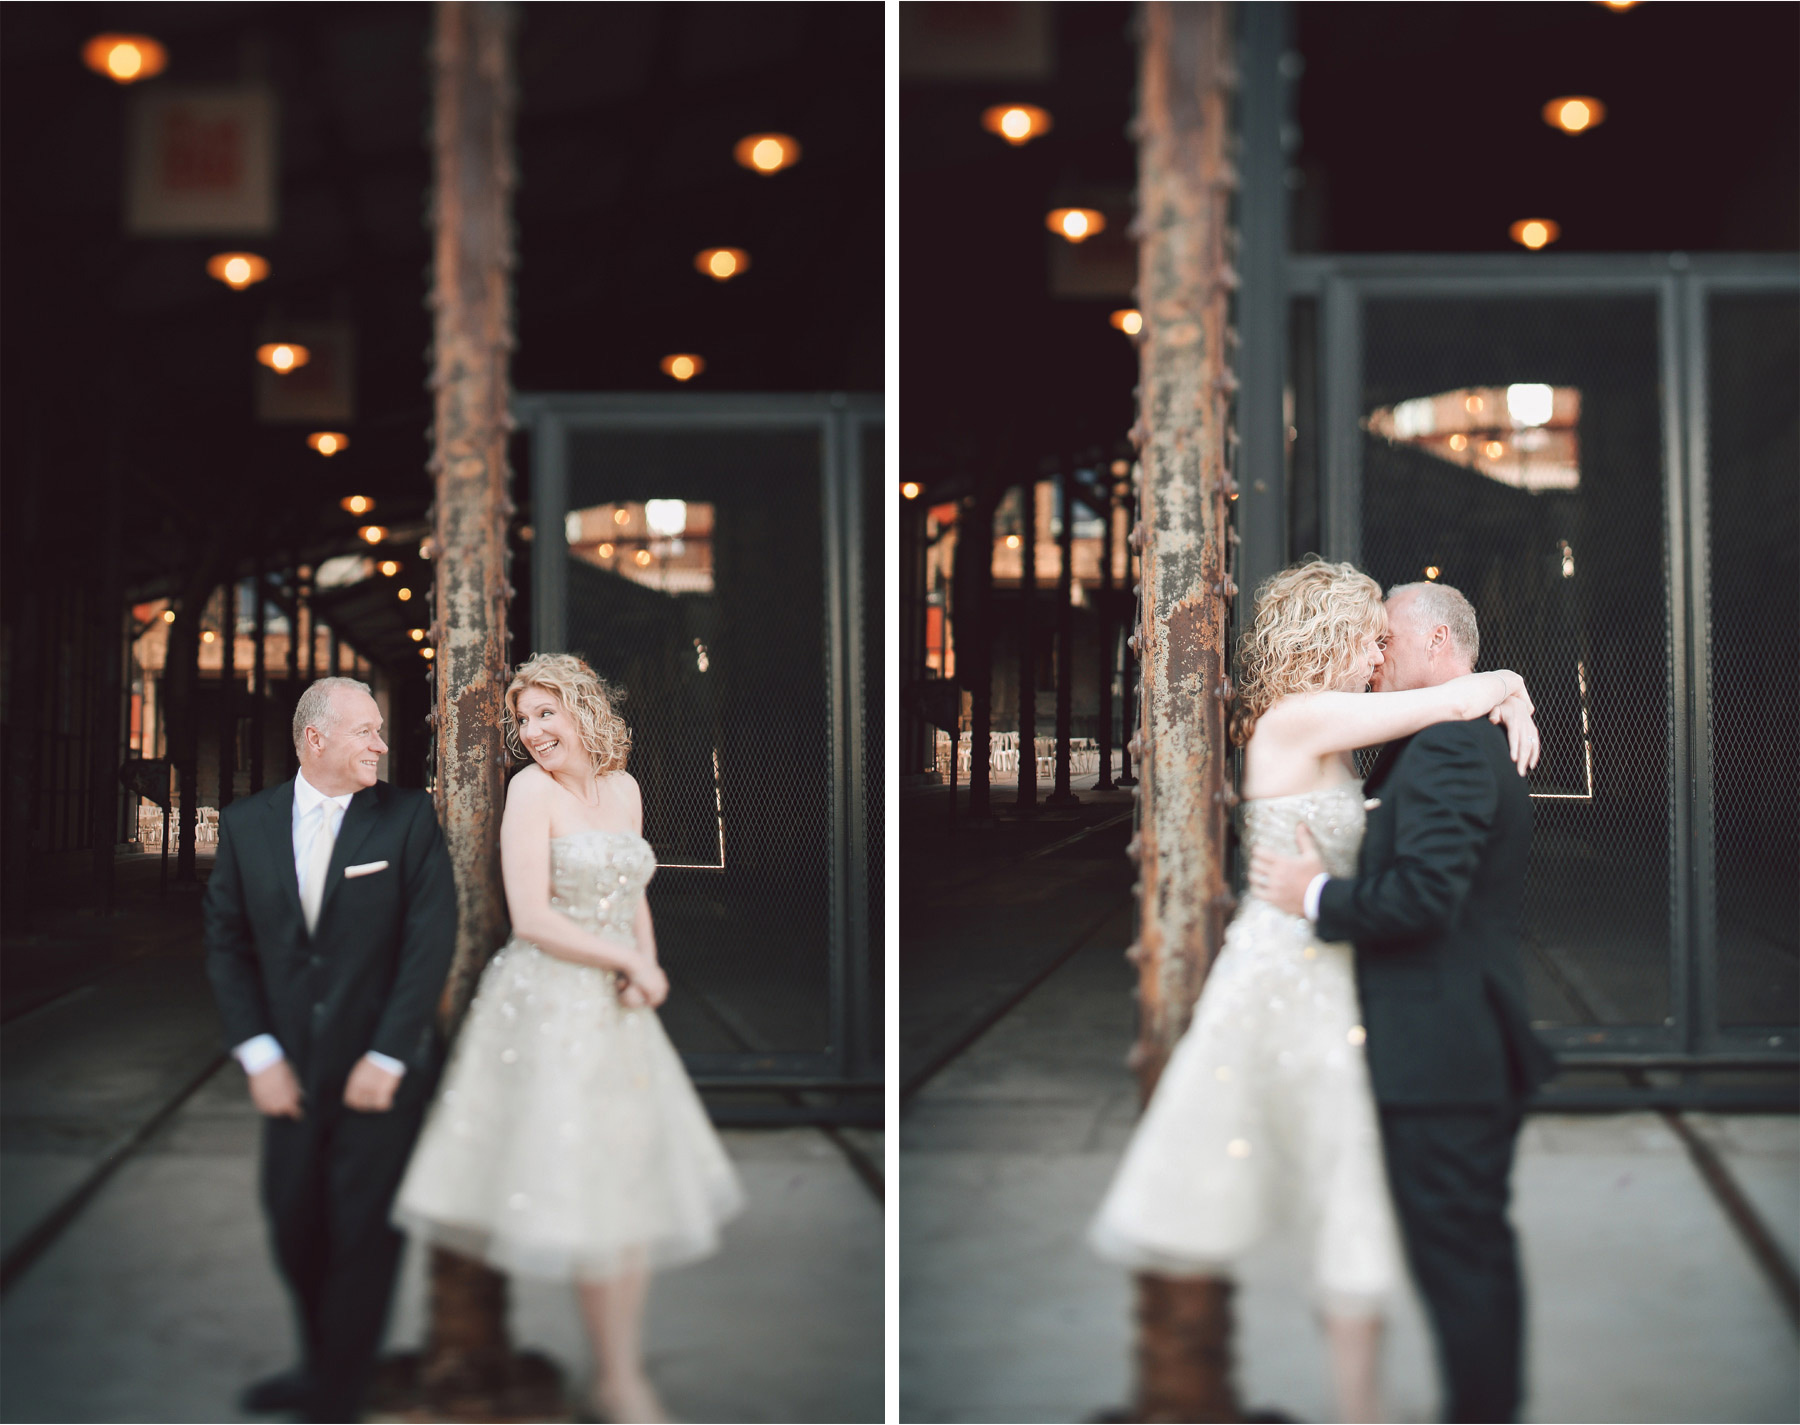 08-Minneapolis-Minnesota-Wedding-Photographer-by-Andrew-Vick-Photography-Spring-Downtown-Bride-Groom-Laughter-Kiss-Vintage-Dannette-and-Darren.jpg